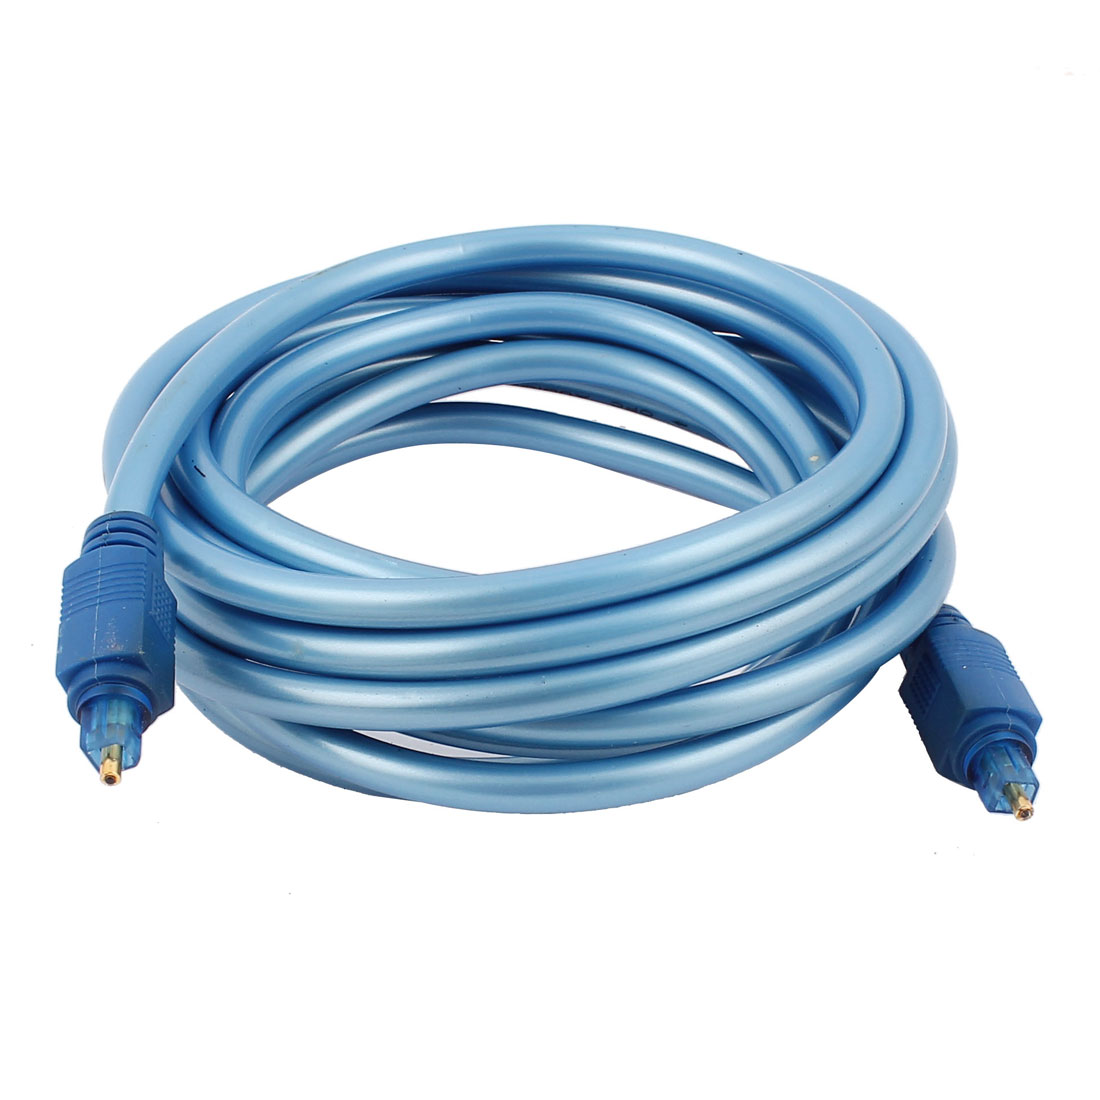 10Ft 3 Meters Male to Male Digital Audio Optical Fiber Cable Cord Lead Blue